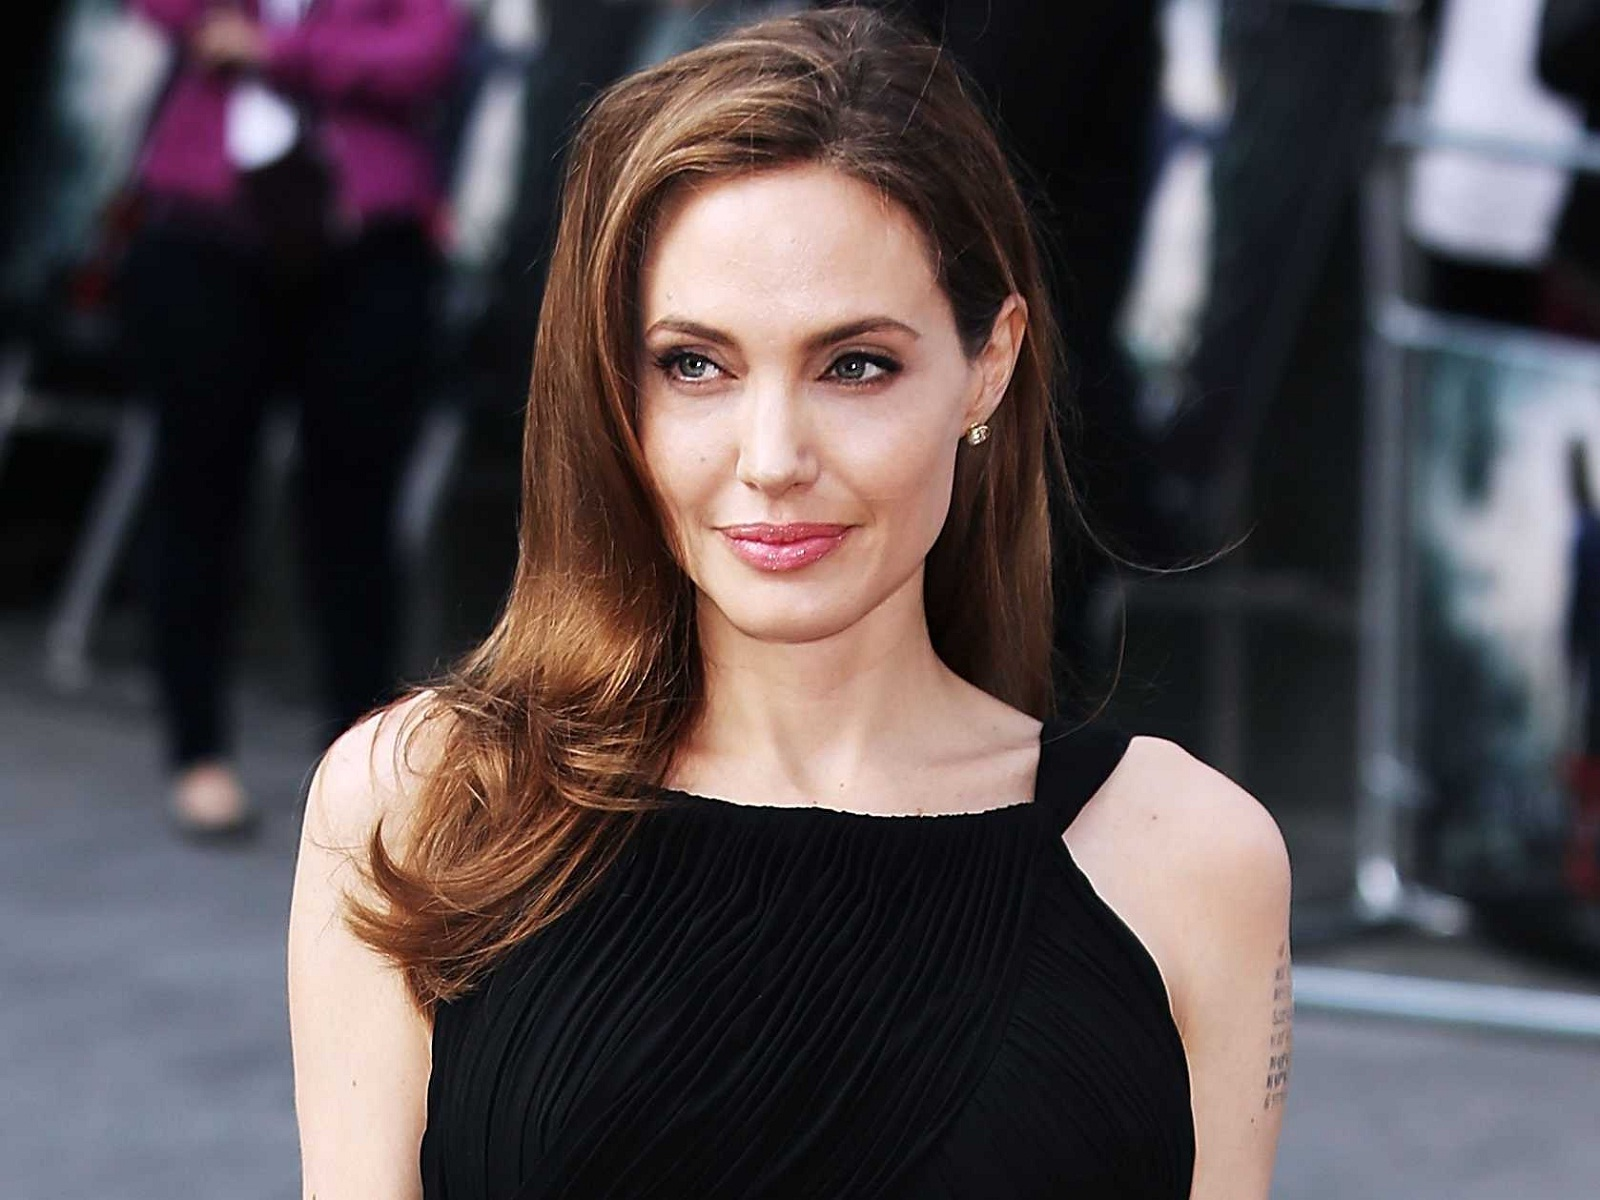 angelina jolie hot cool images download hd